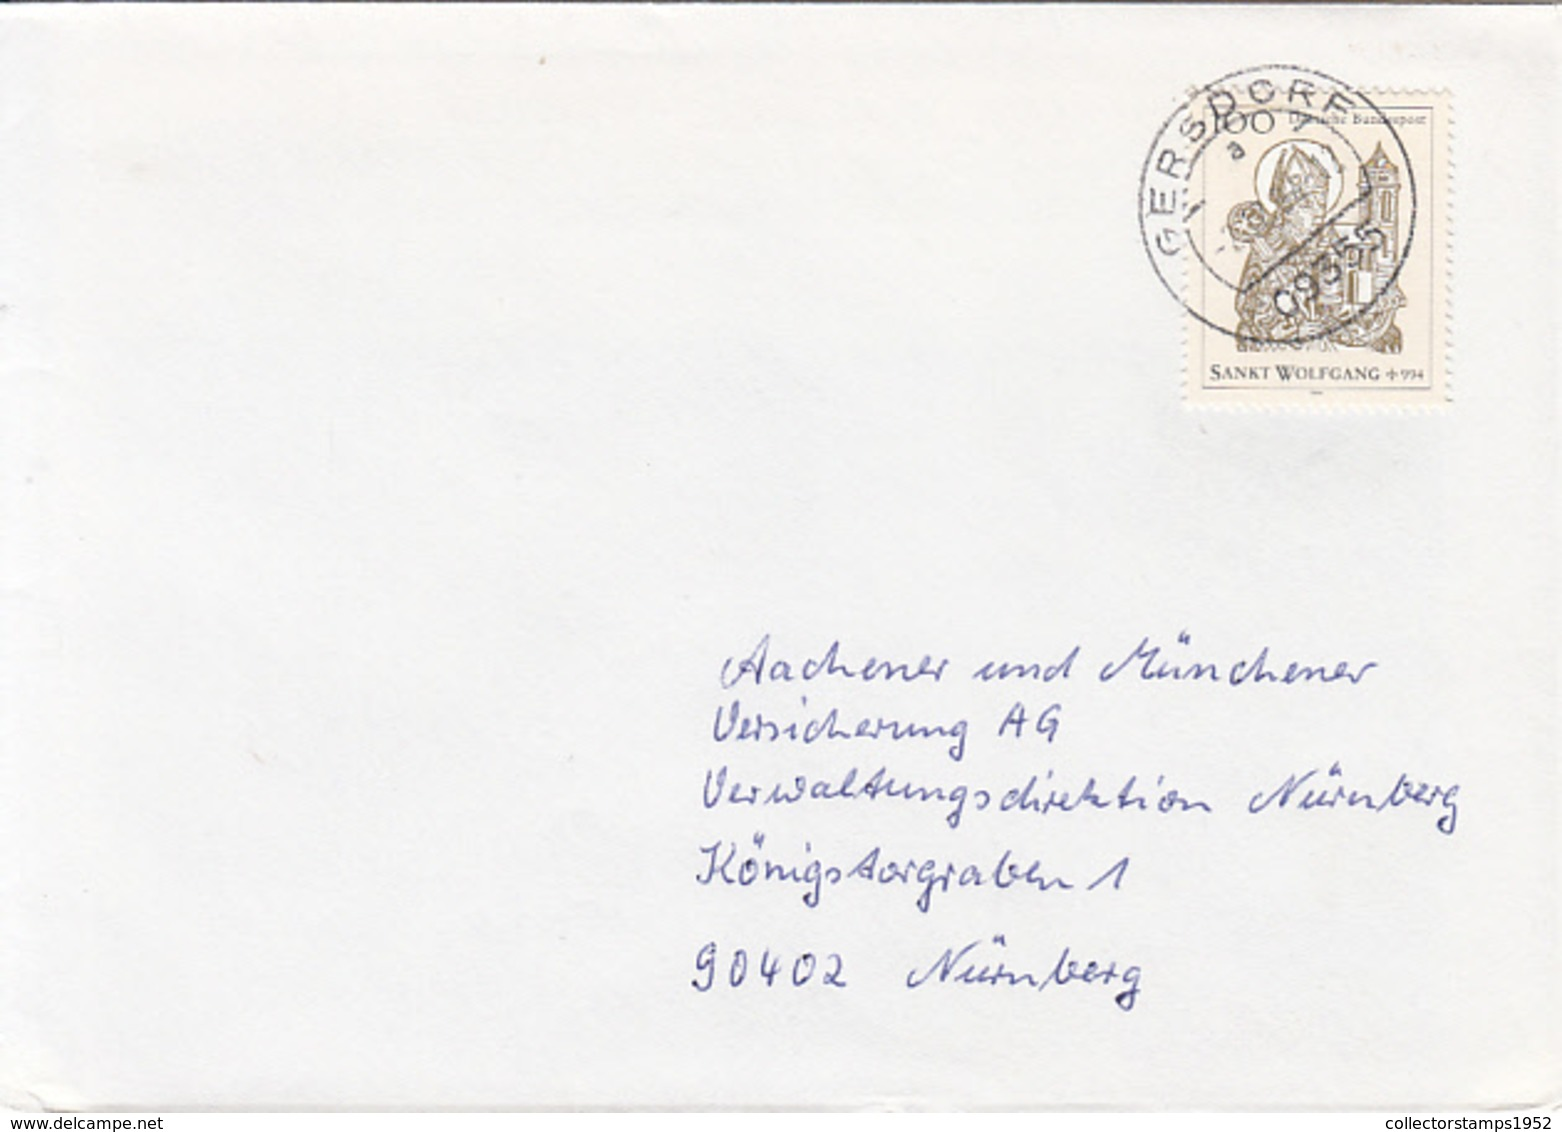 83932- ST WOLFGANG, STAMPS ON COVER, 1994, GERMANY - Storia Postale